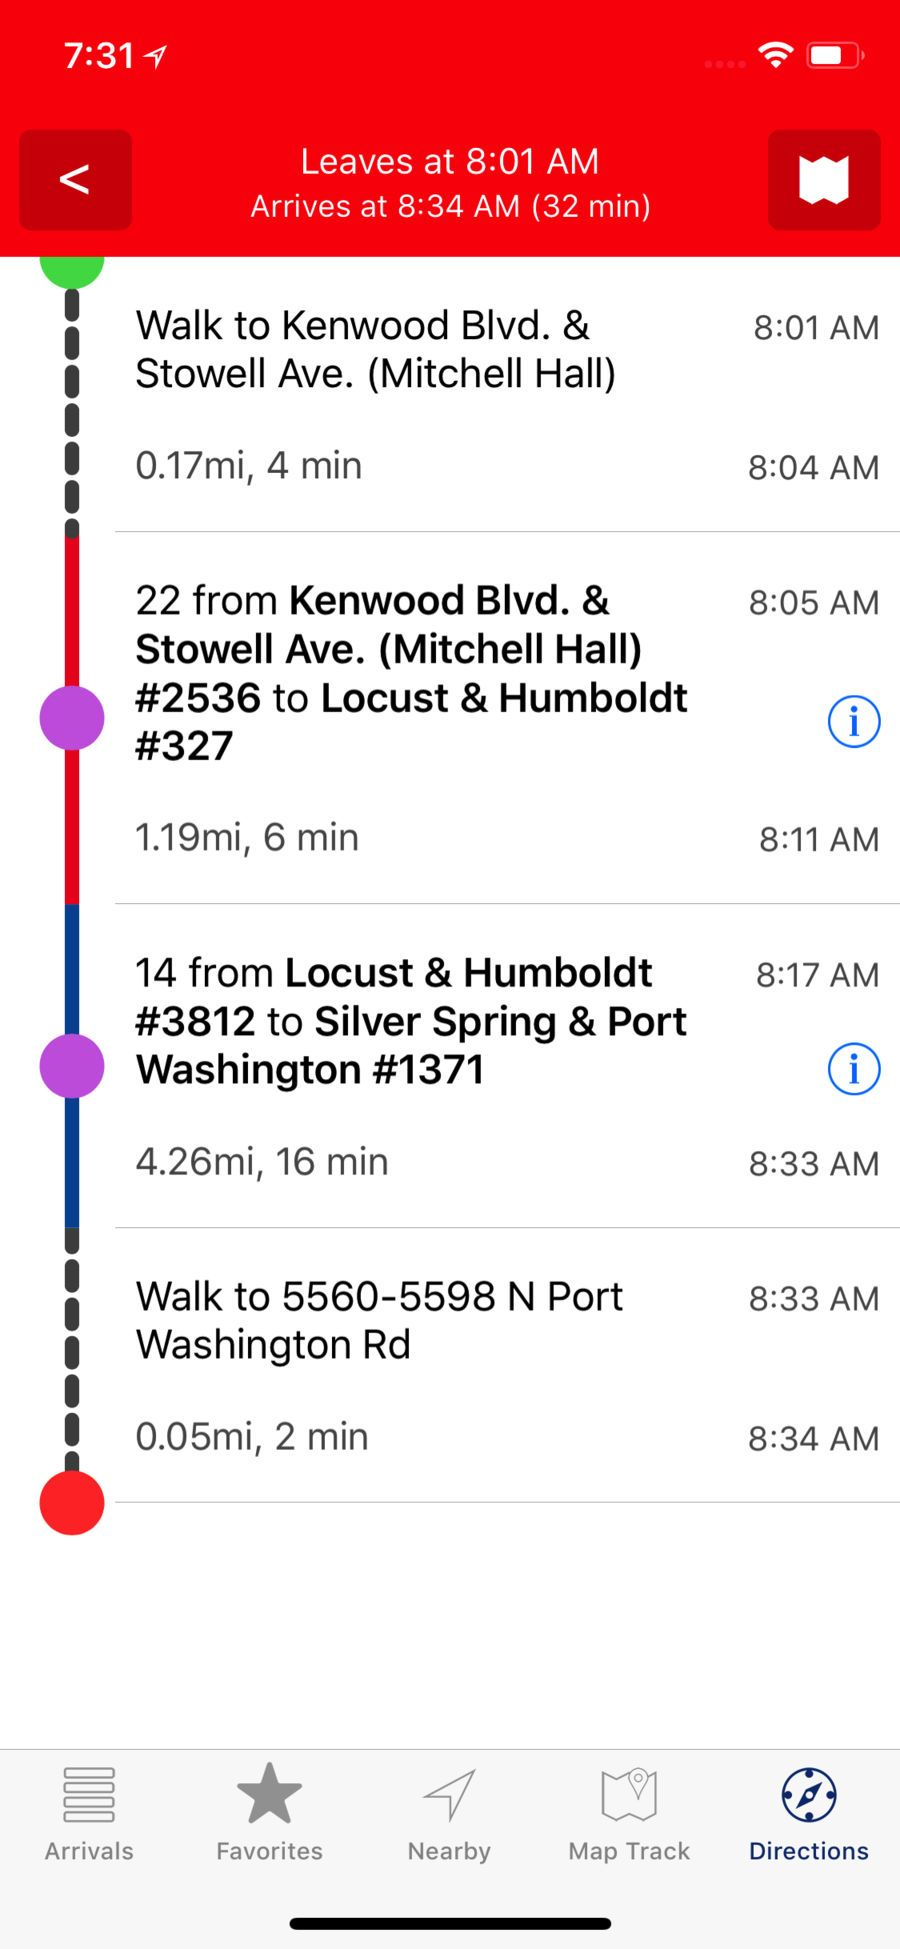 mcts tracker app